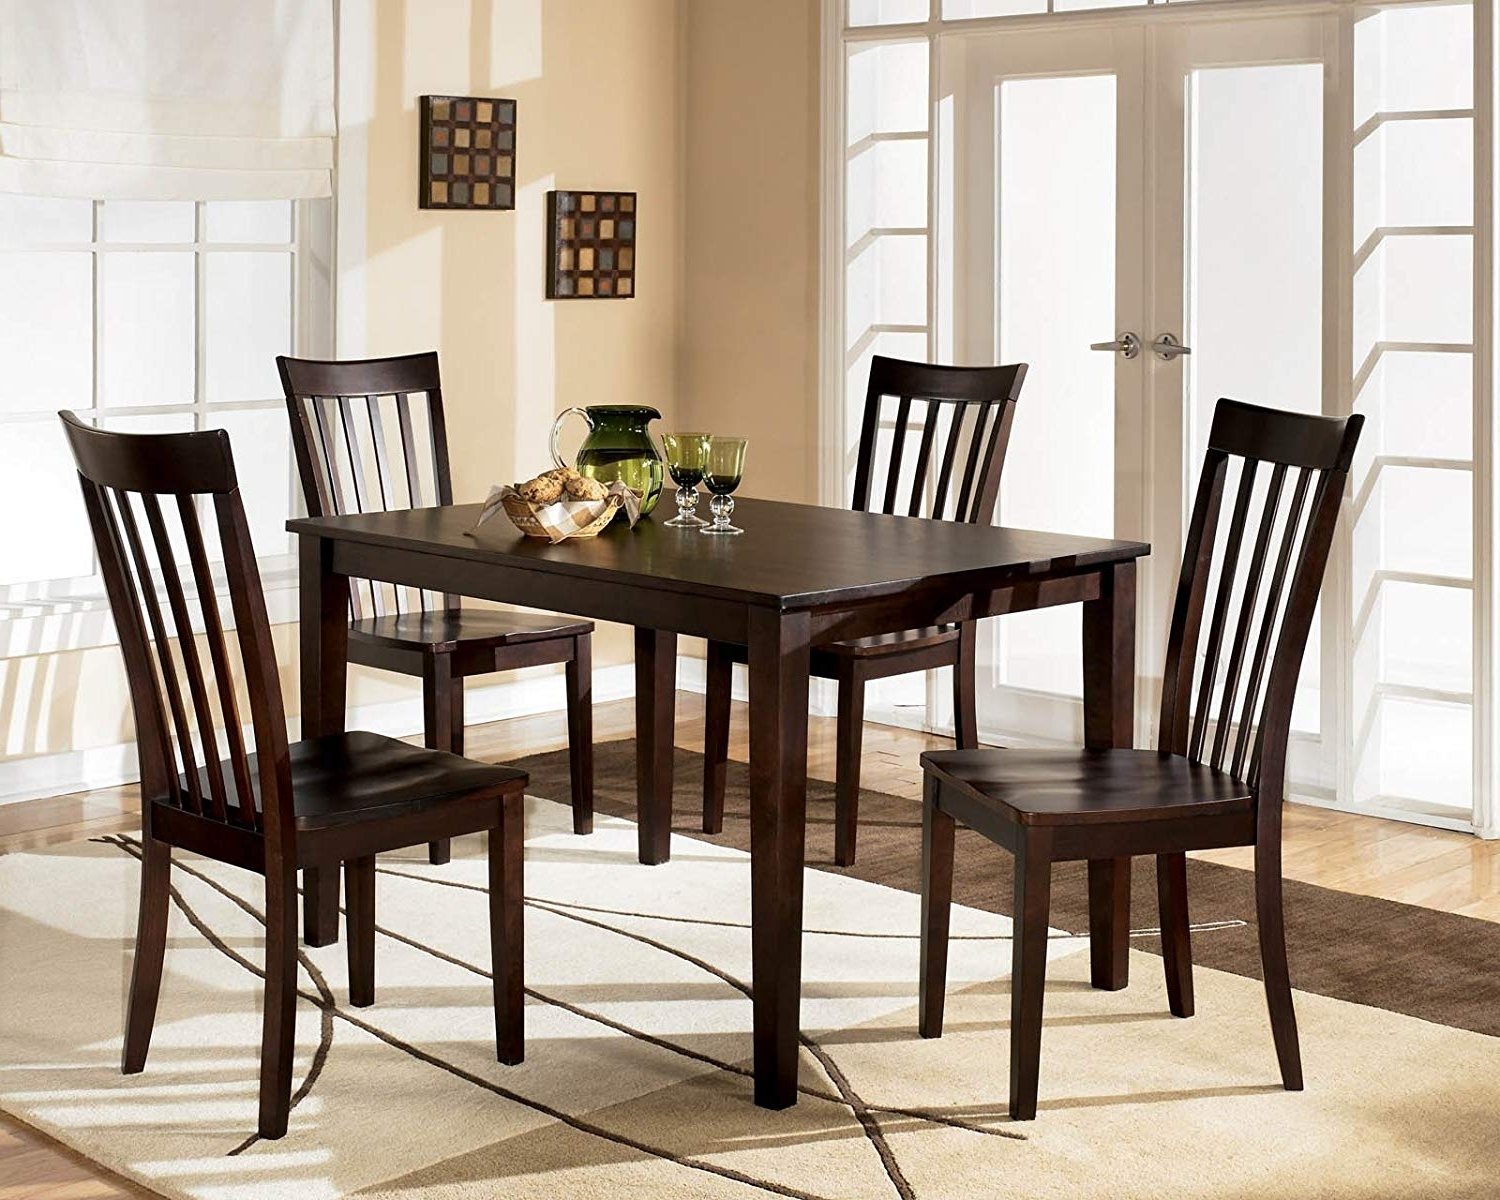 Amazon – Contemporary Hyland 5 Piece Dining Set – Table & Chair Sets Throughout Most Up To Date Hyland 5 Piece Counter Sets With Stools (View 3 of 25)